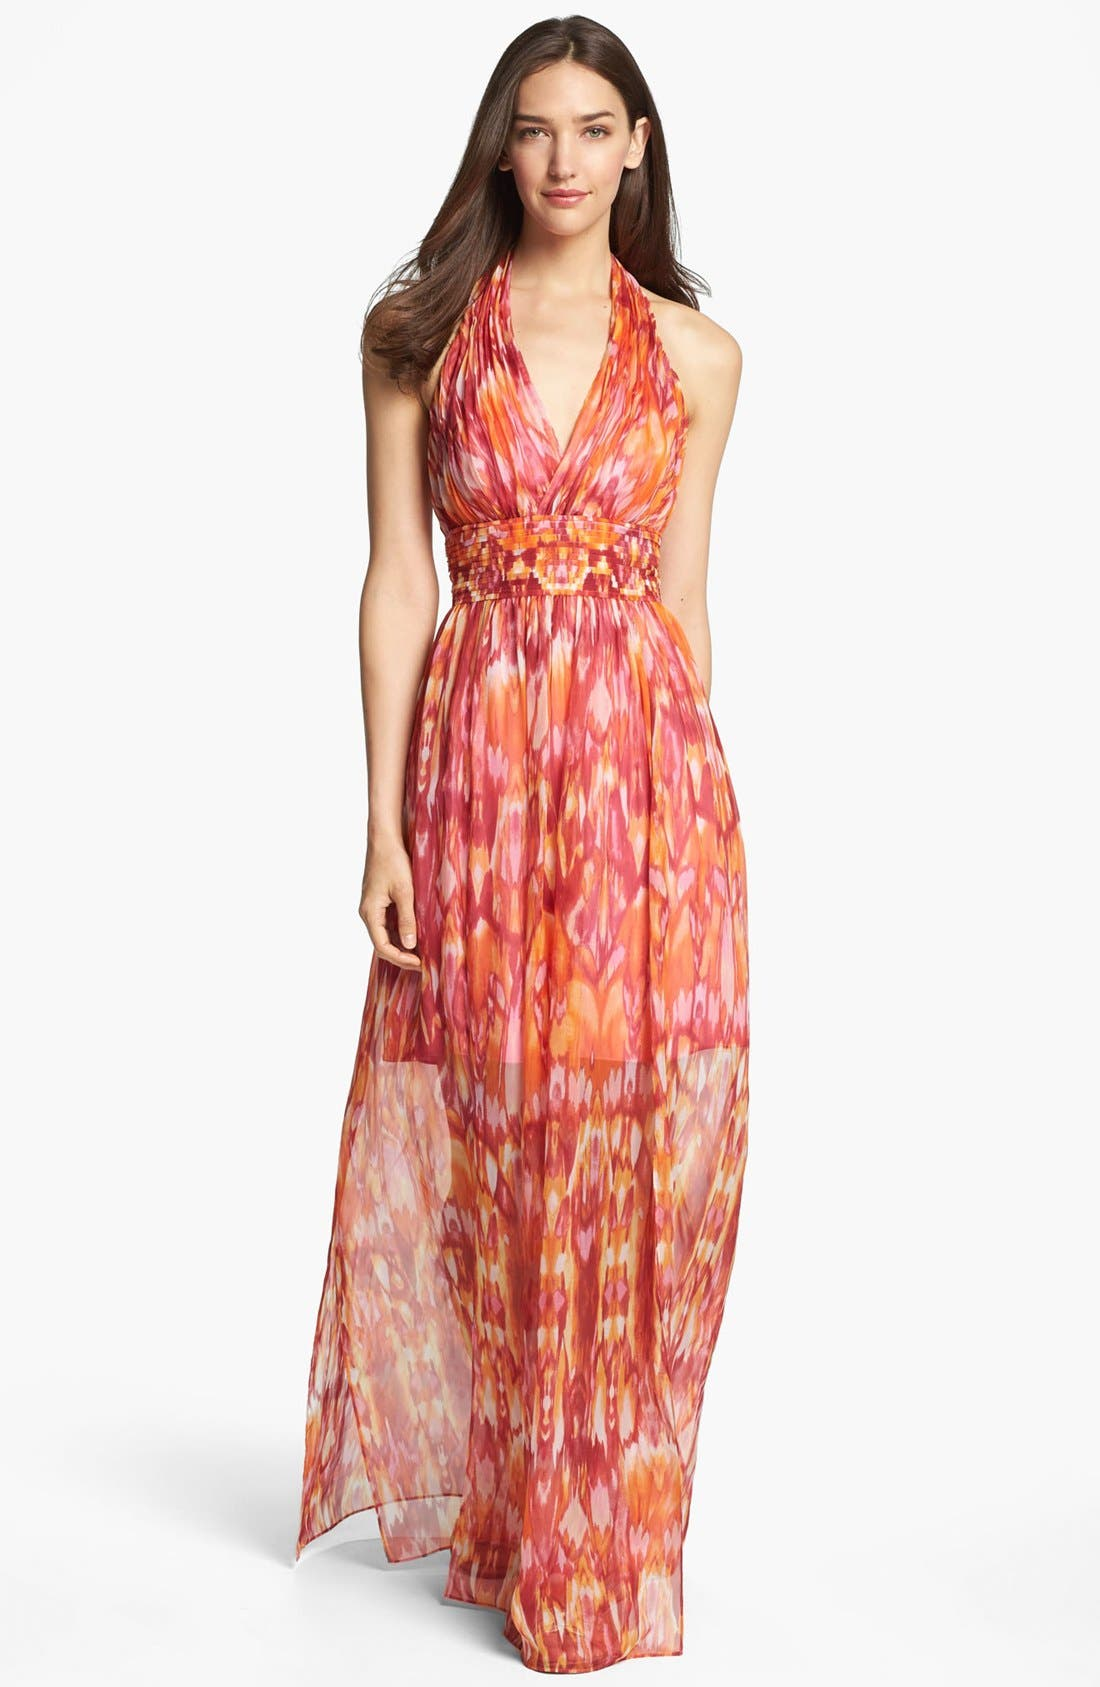 Alternate Image 1 Selected - Laundry by Shelli Segal 'Sun Shadow' Print Halter Dress